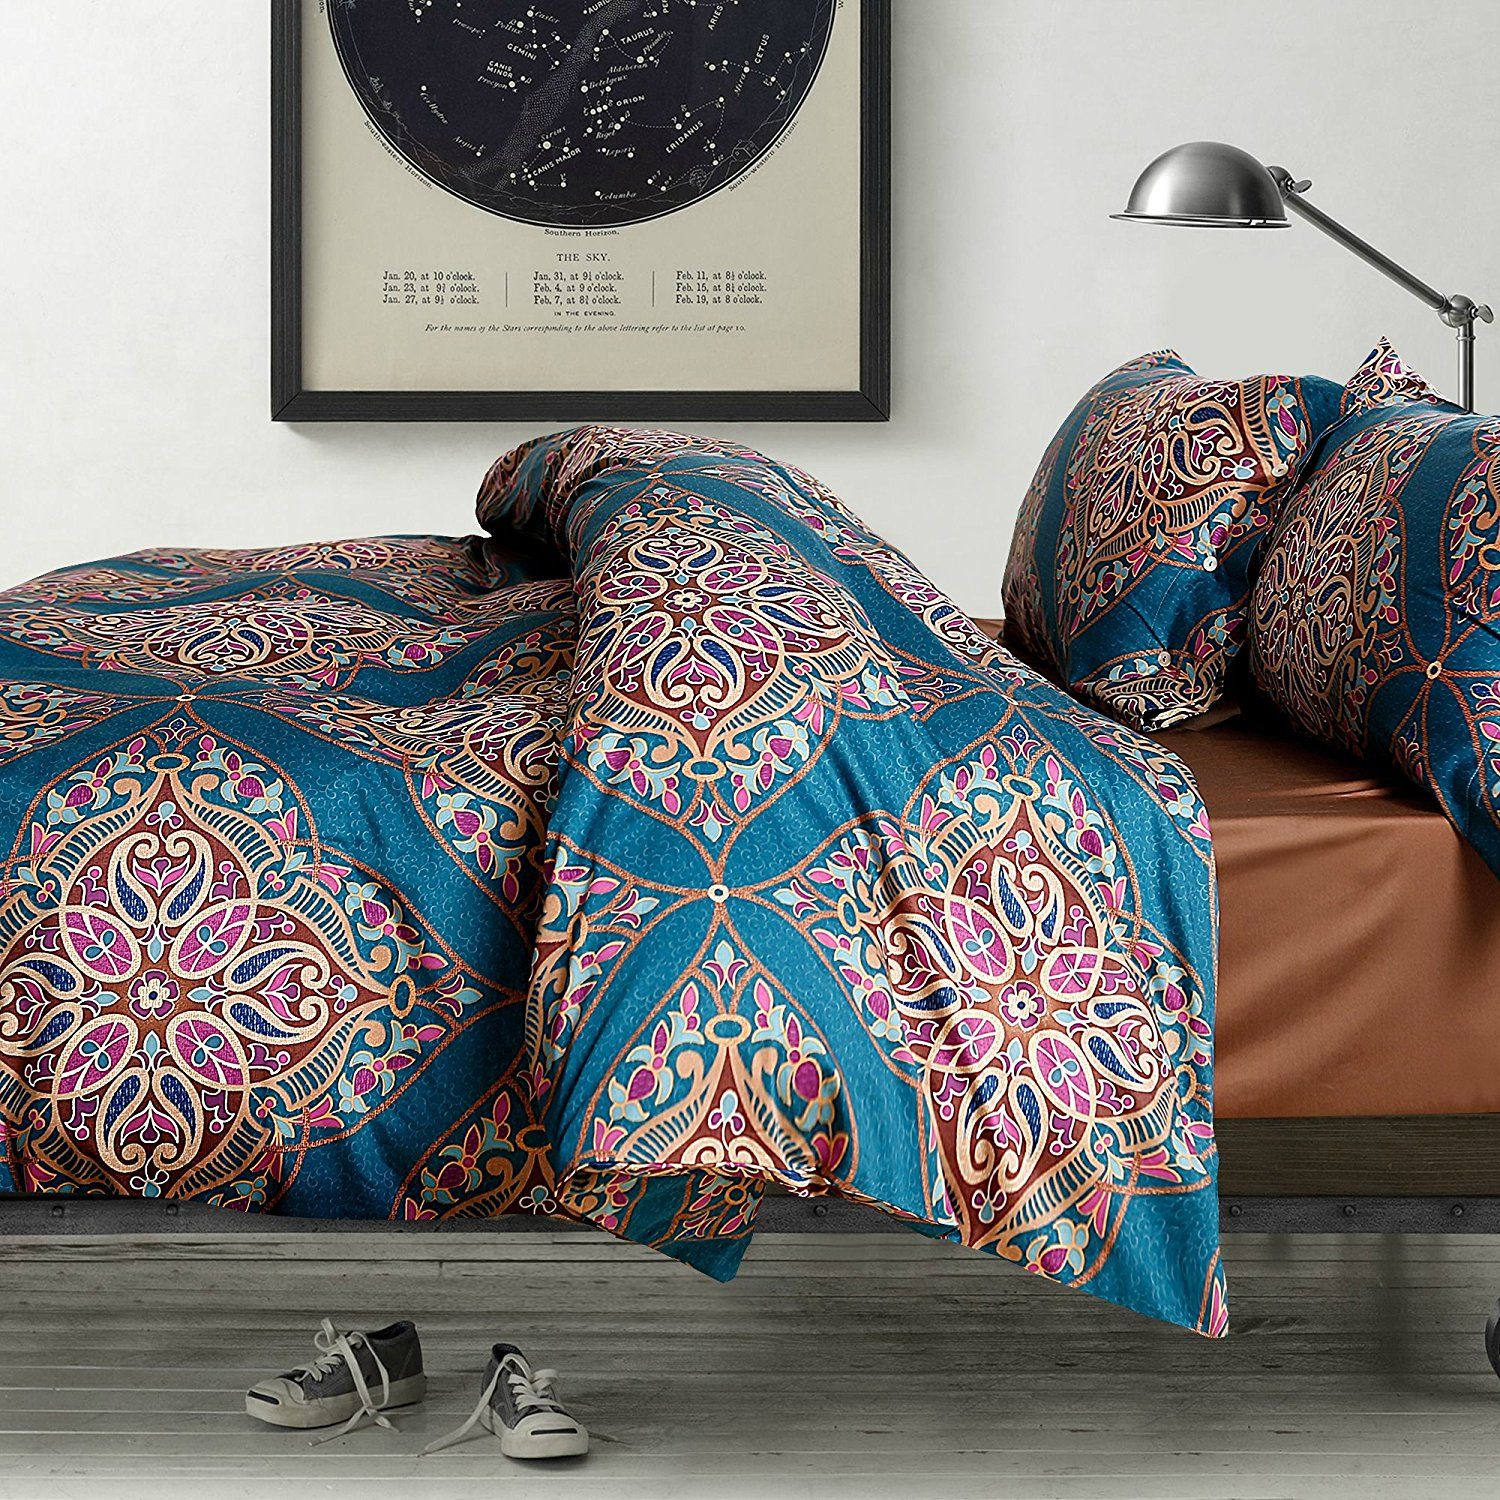 top boho duvet style mandala sets queen best on bedding double most colorful covers quilt set notch with hippie comforter bohemian cover bedspread white